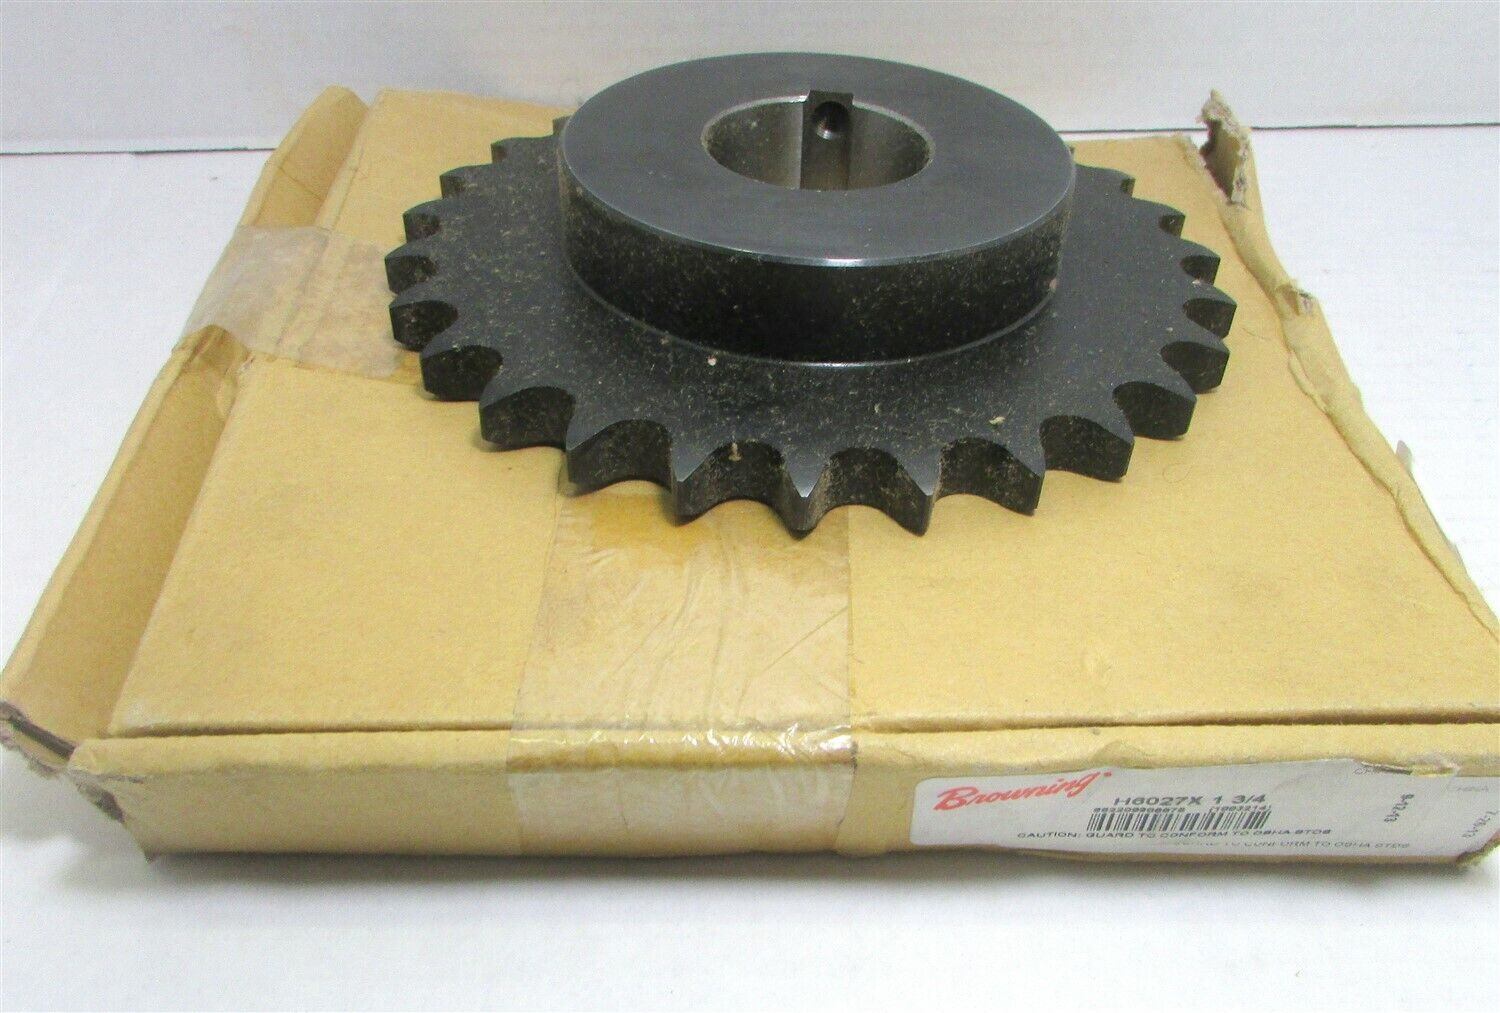 26 Teeth Regal Hardened Teeth Single Strand Browning H8026X 1 7//16 Finished Bore Roller Chain Sprocket Steel